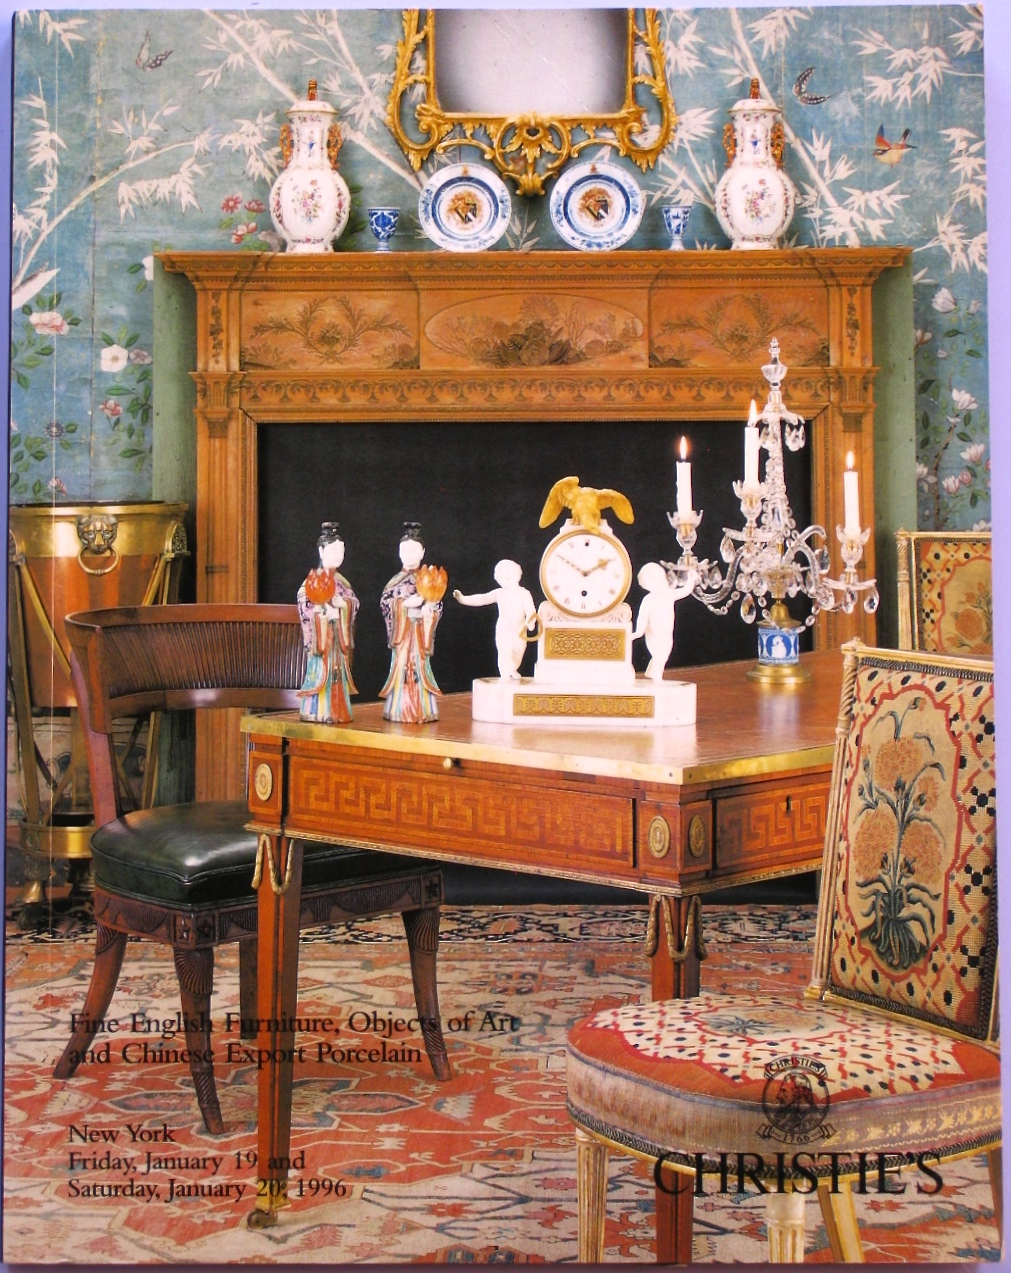 CNY19960119: Bookshop: [1996] Christie's Fine English Furniture, objects of Art and Chinese Export Porcelain